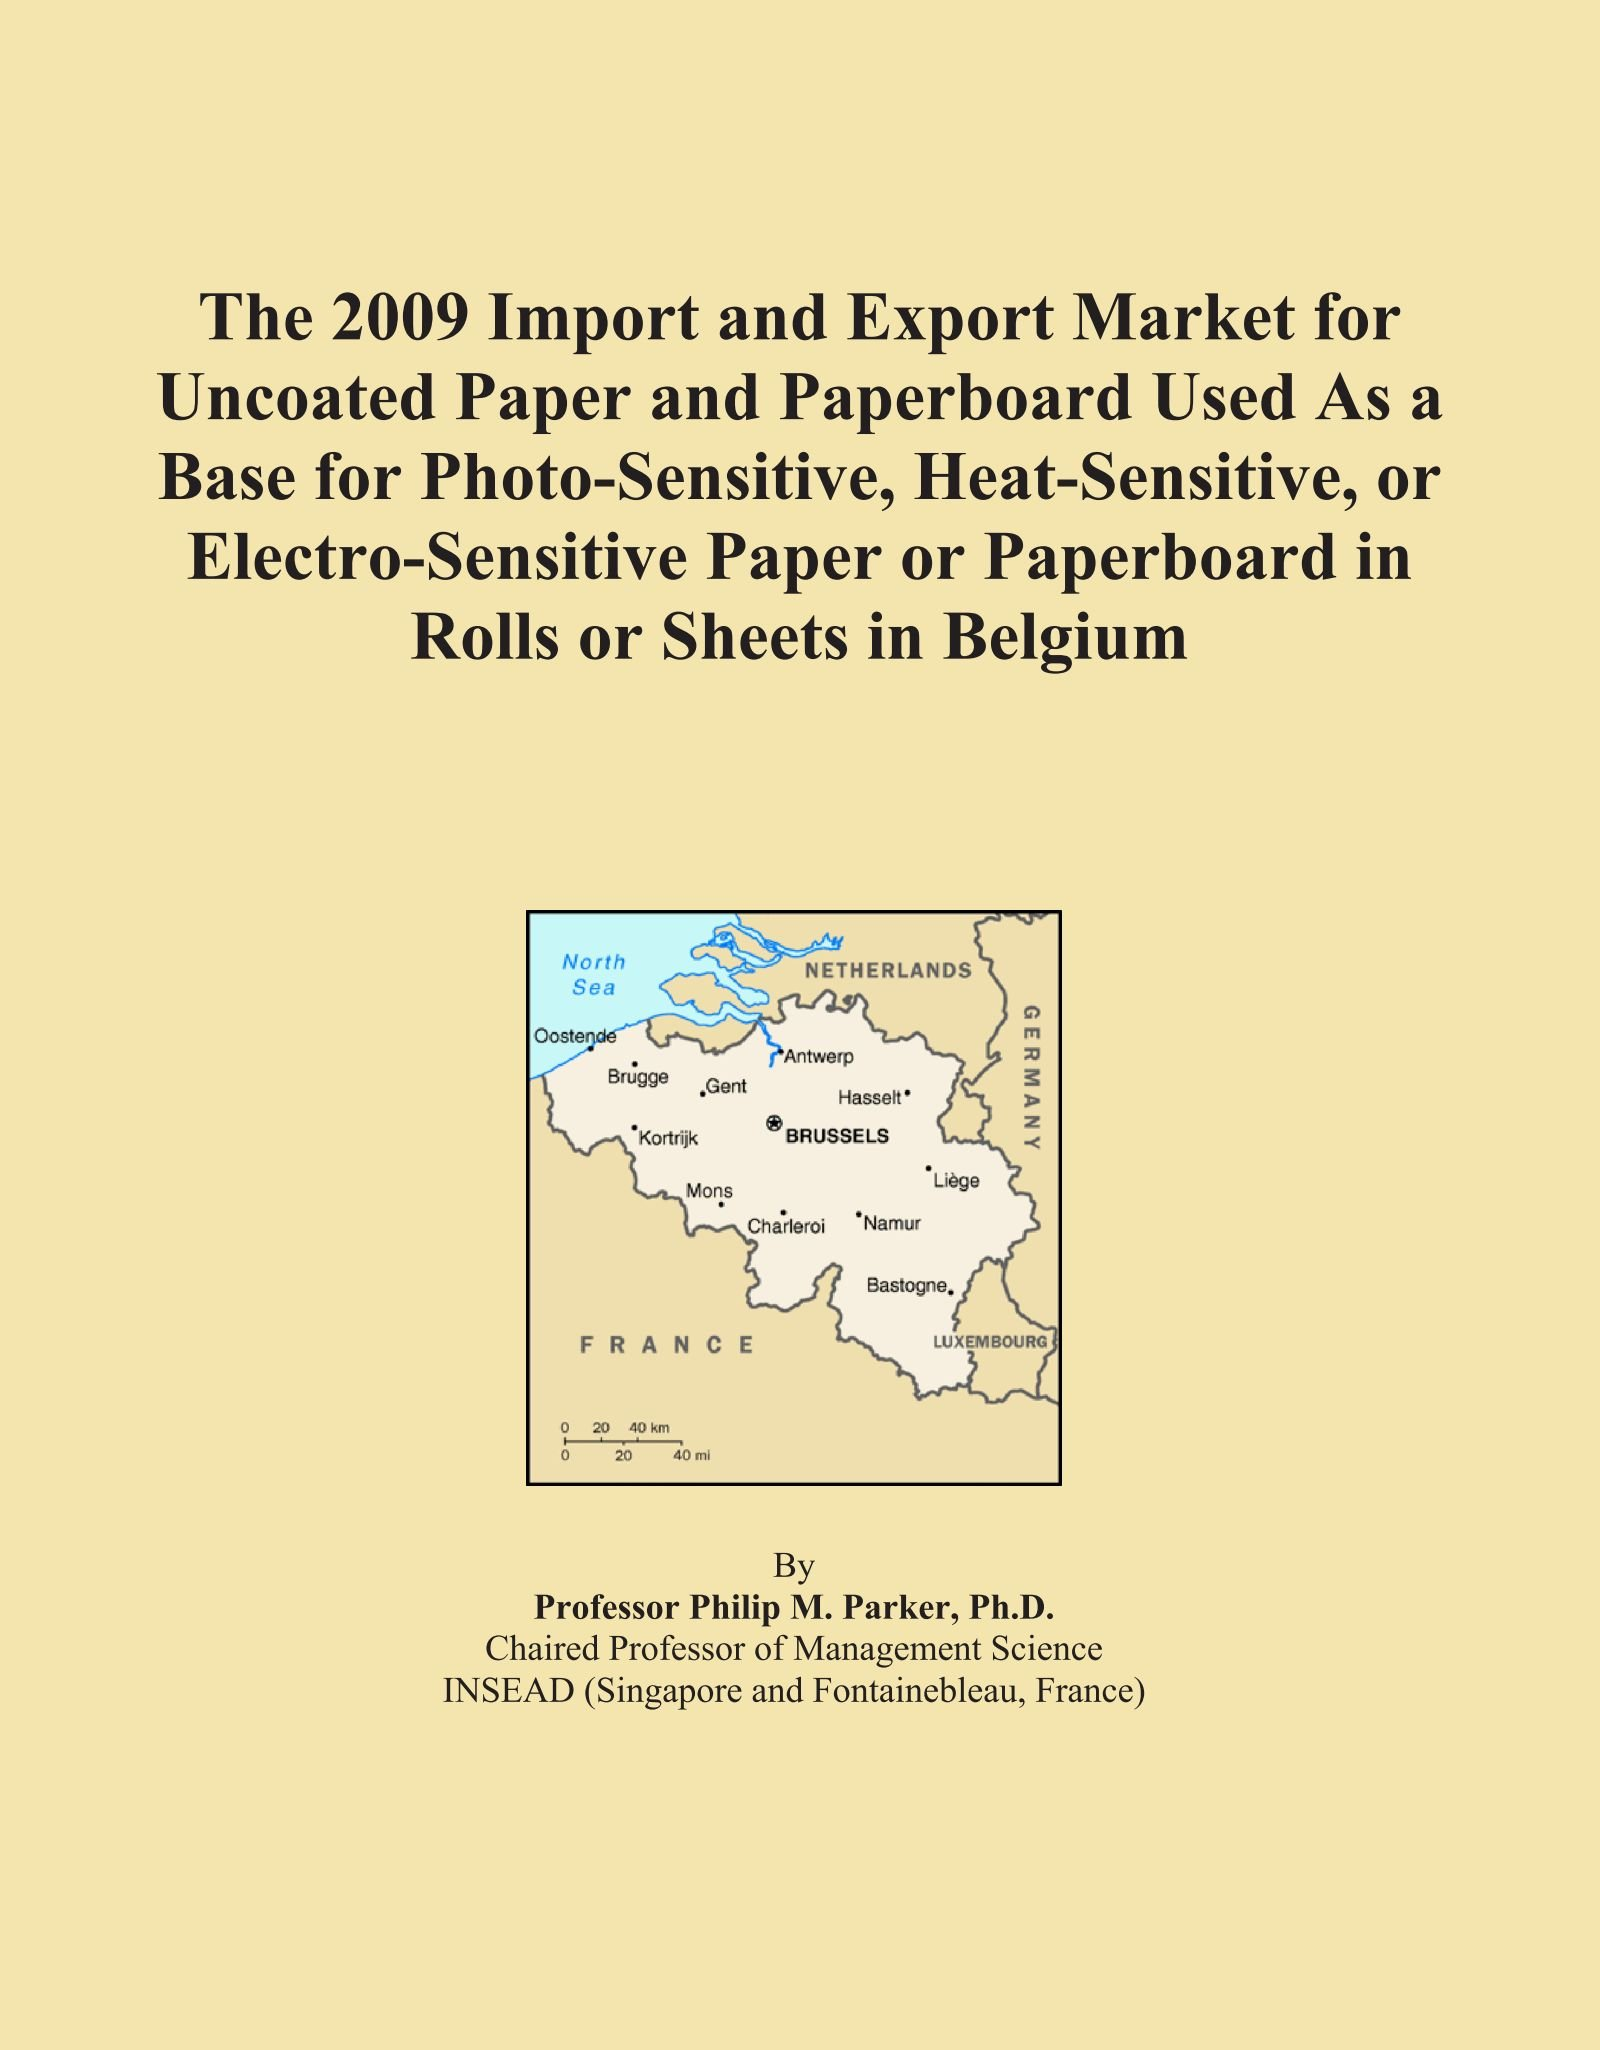 The 2009 Import and Export Market for Uncoated Paper and Paperboard Used As a Base for Photo-Sensitive, Heat-Sensitive, or Electro-Sensitive Paper or Paperboard in Rolls or Sheets in Belgium PDF